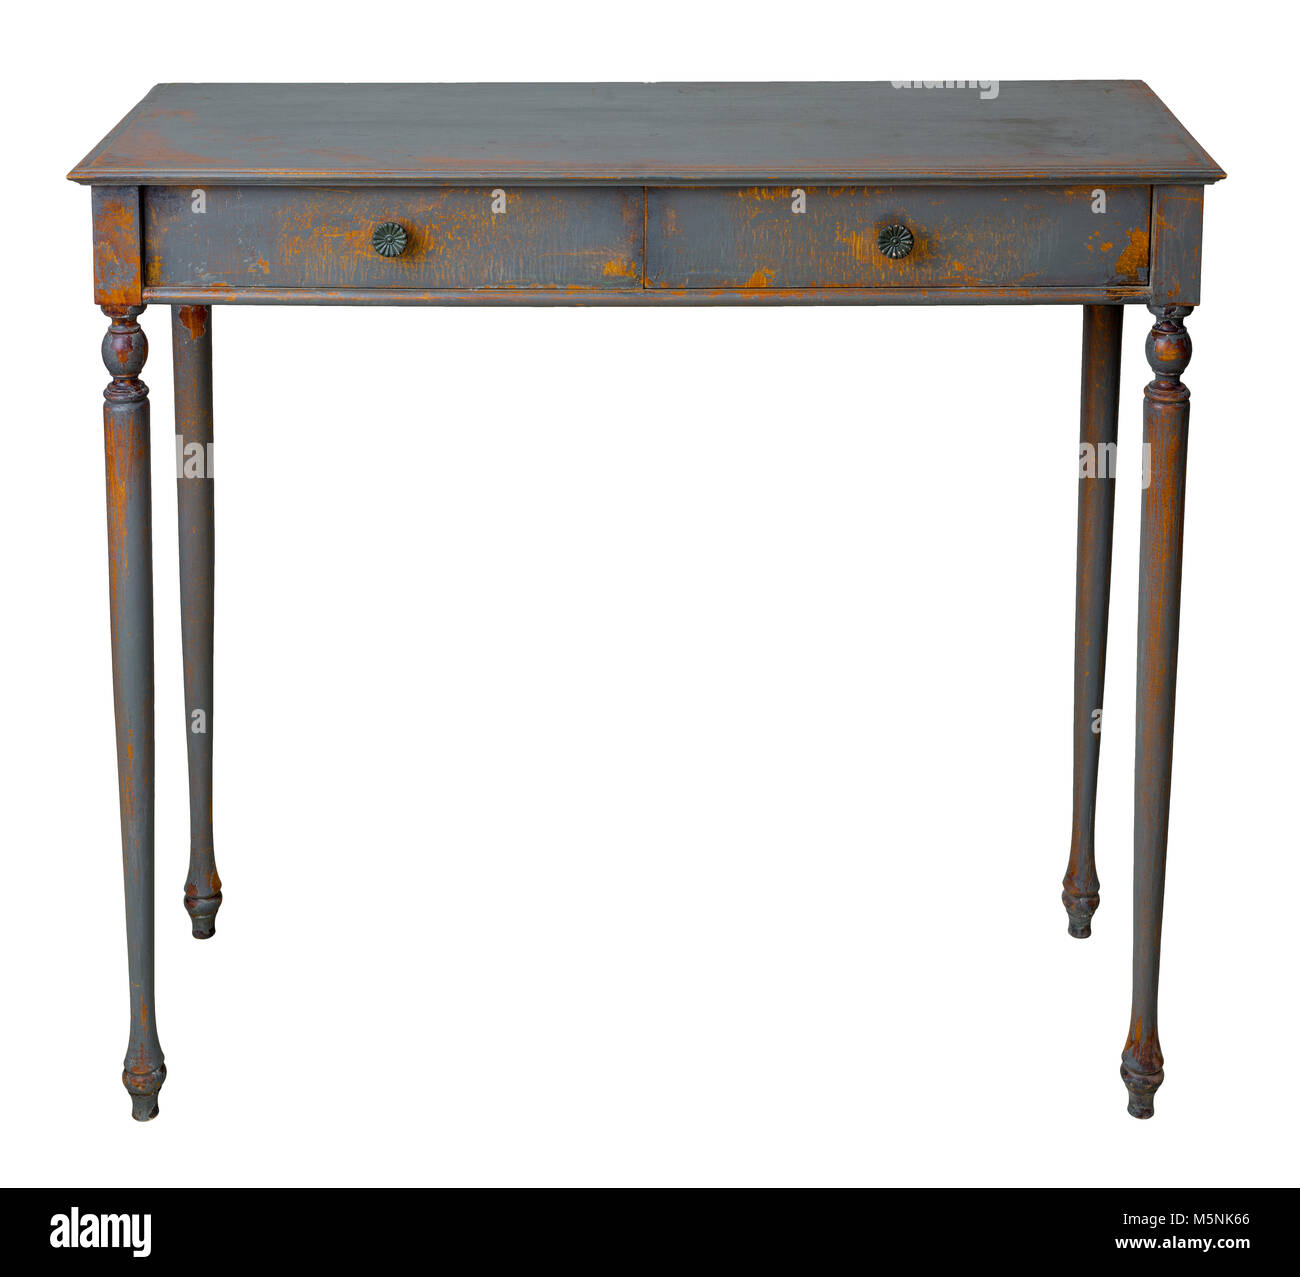 Vintage Furniture - Retro wooden vintage table with two drawers painted in grey and orange, isolated on white background - Stock Image